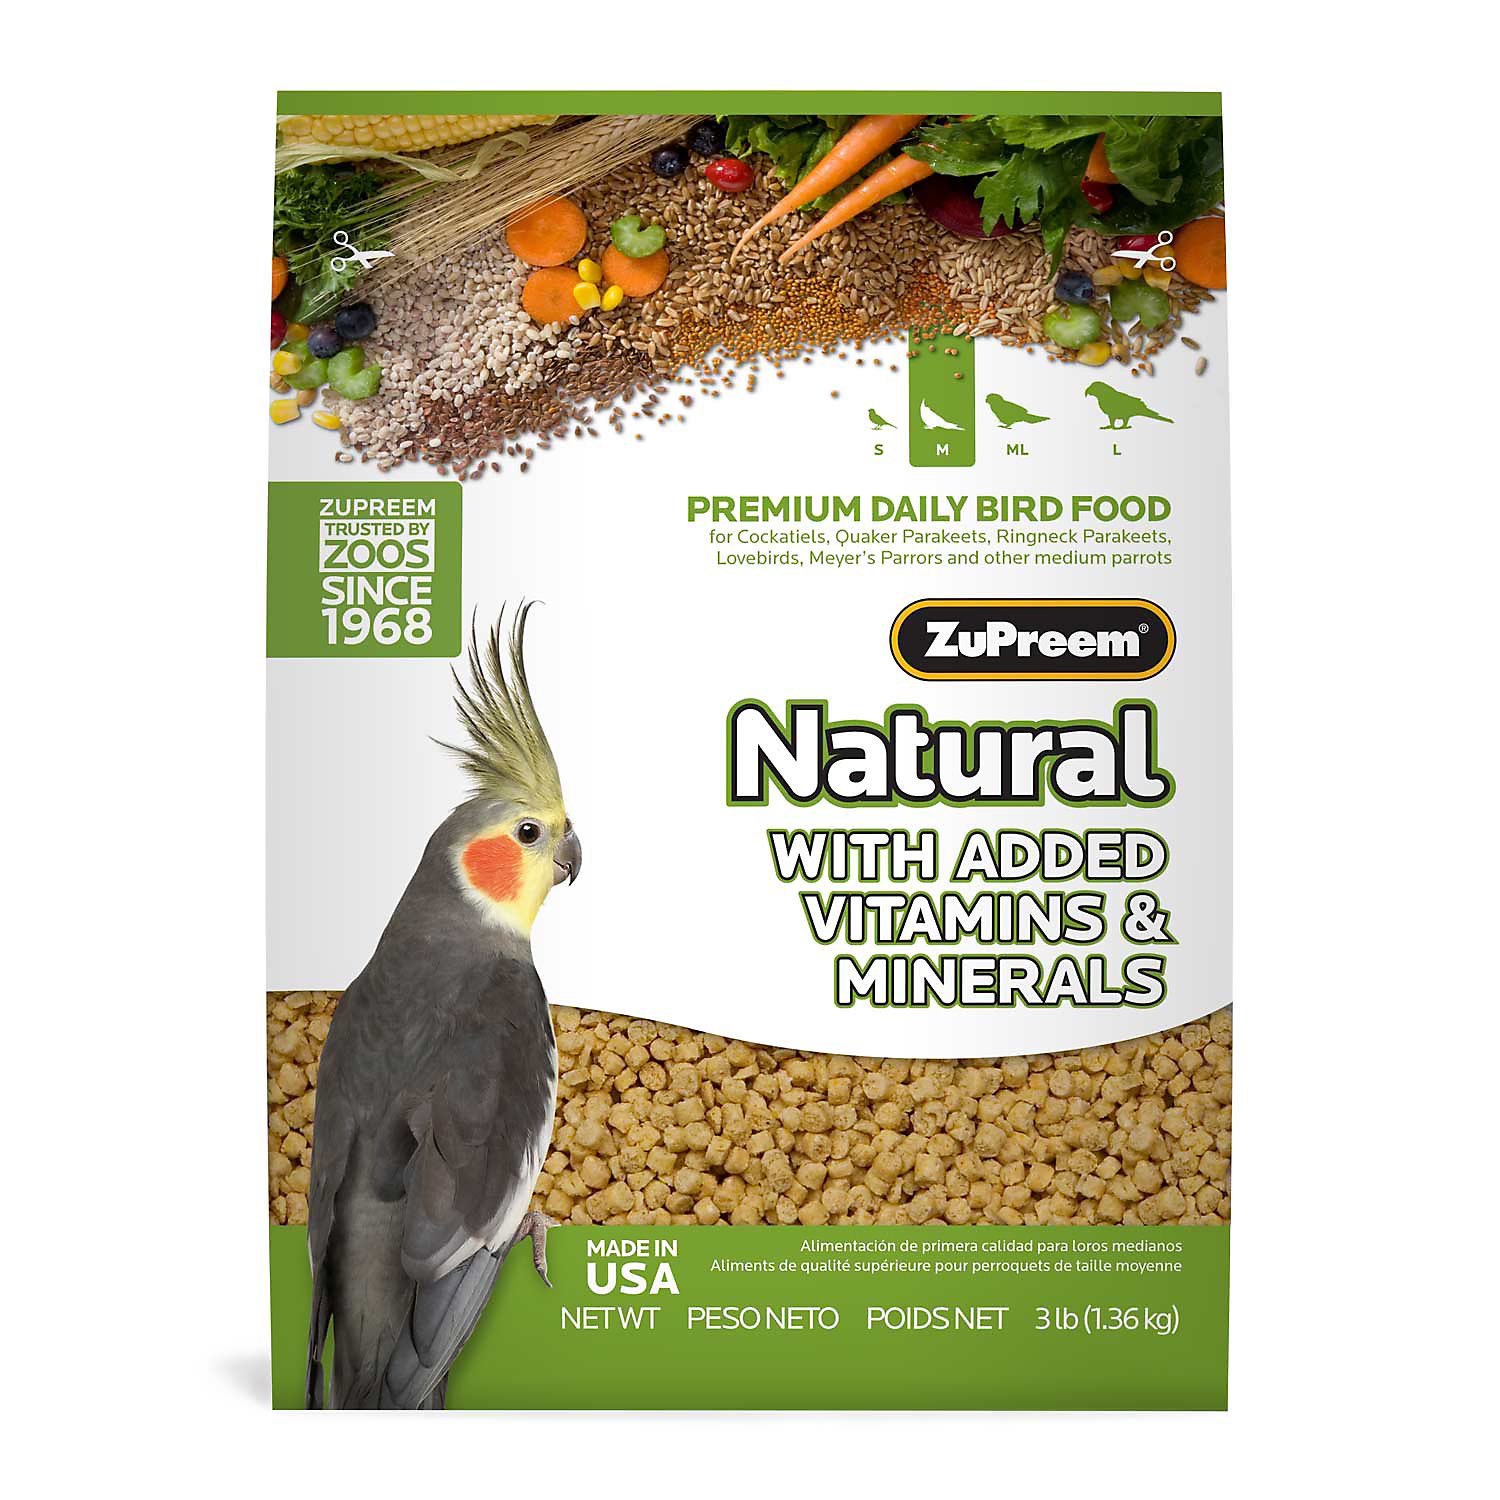 Zupreem Avianmaintenance Natural Bird Diet For Cockatiels 2.5 Lbs.